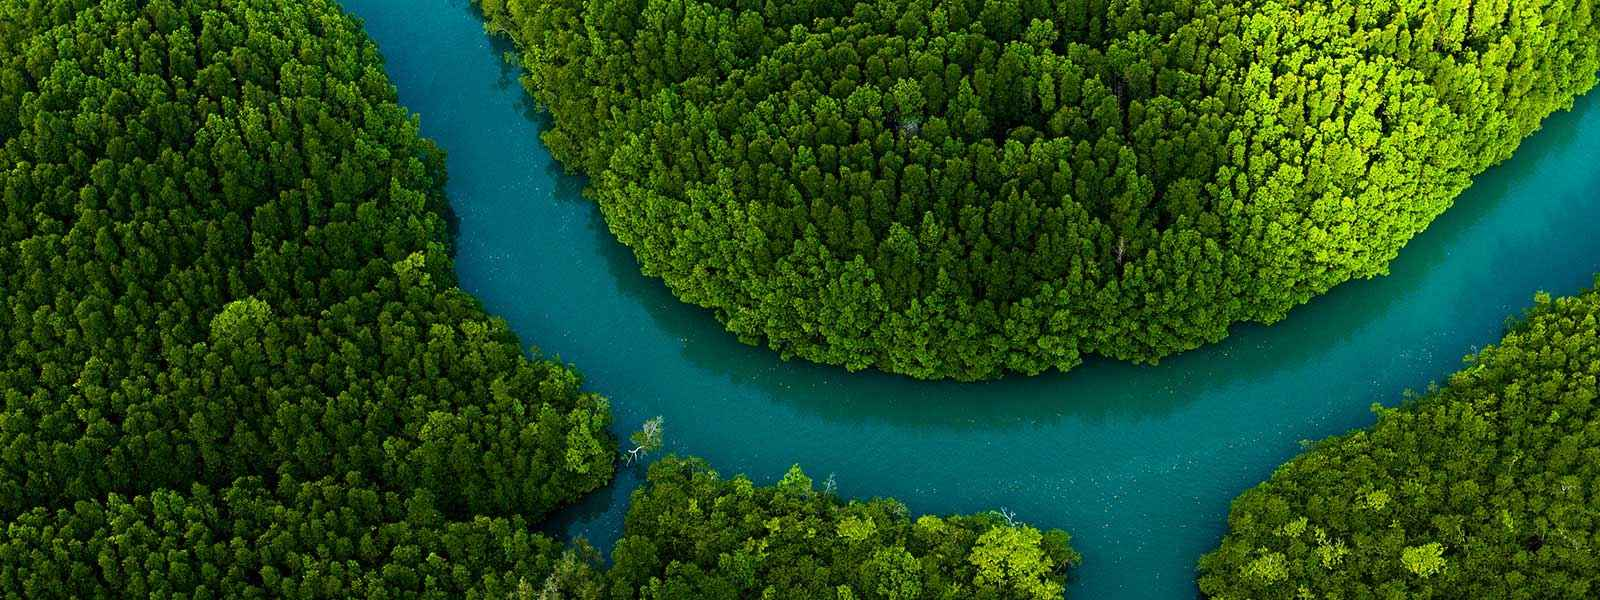 Aerial view of a river through a forest